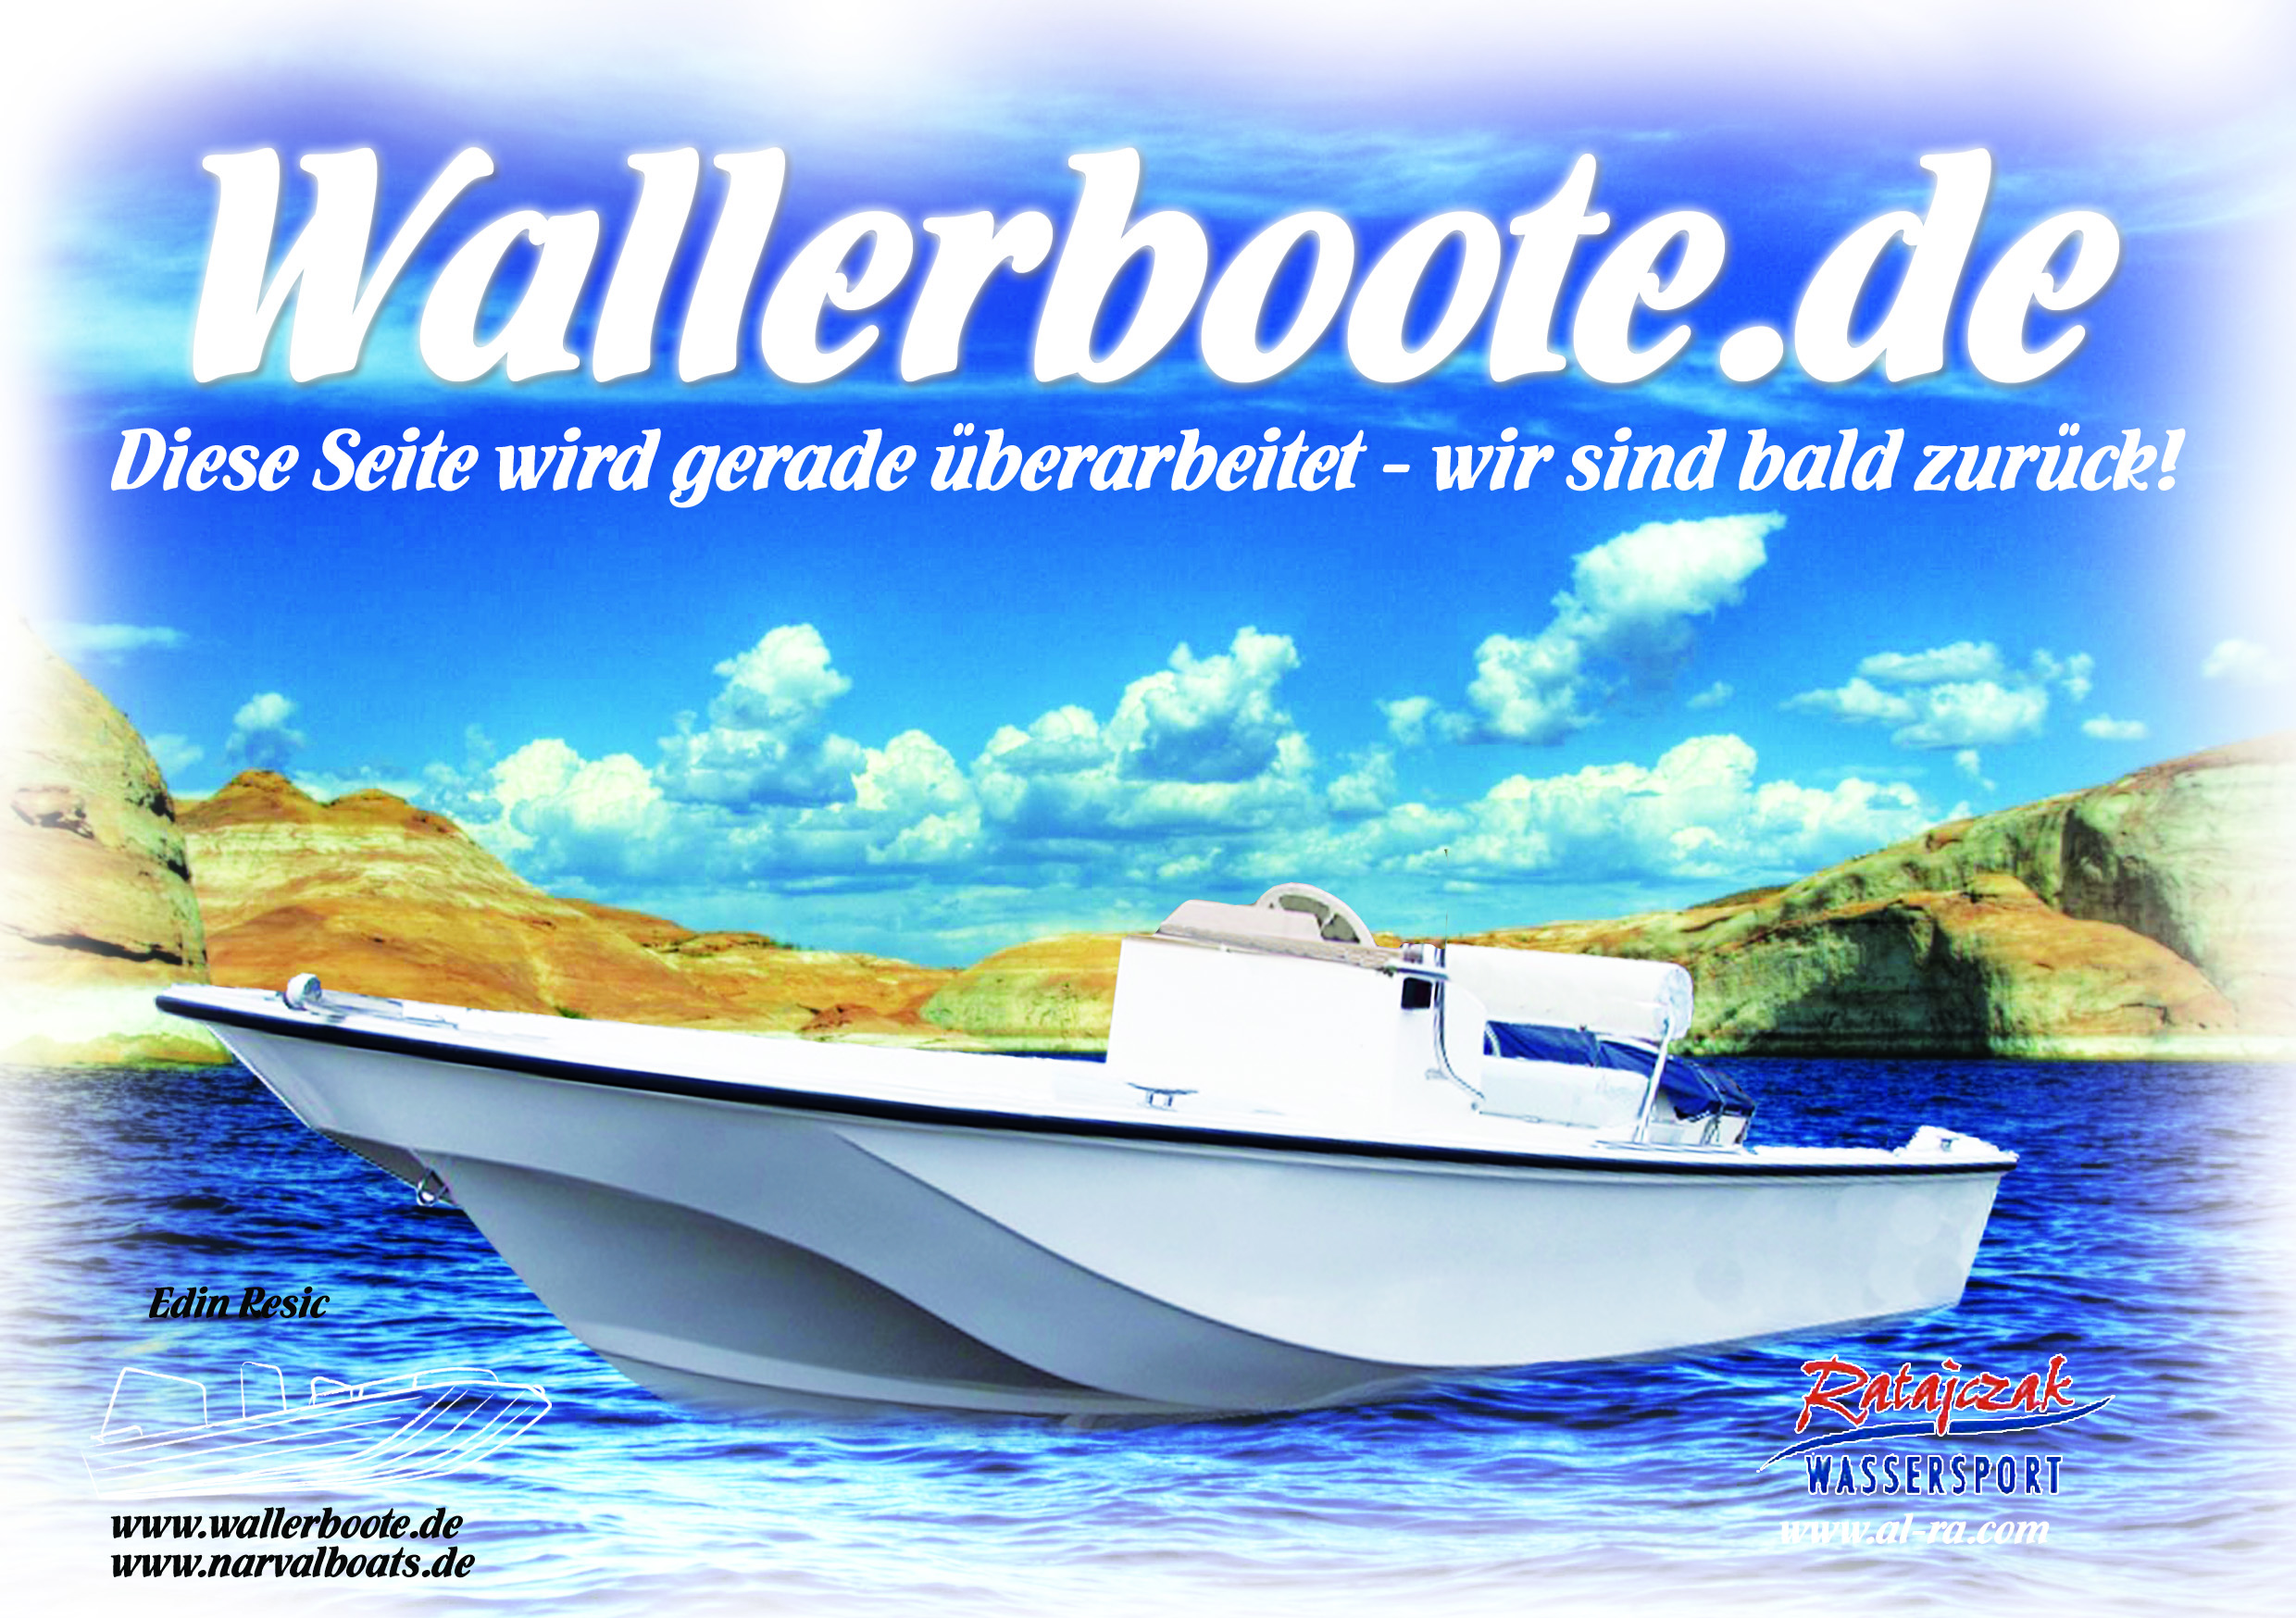 Wallerboote_header